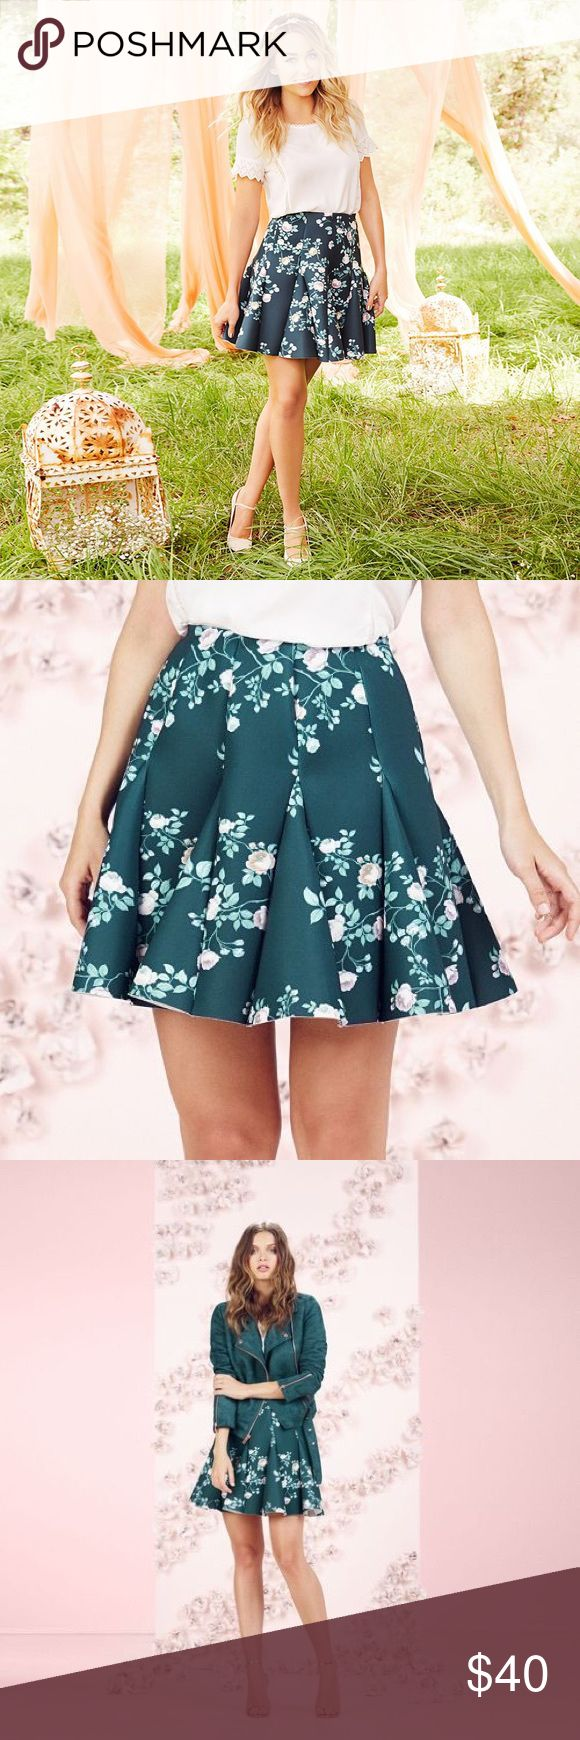 "LAUREN CONRAD Runway Collection Green Scuba Skirt NWT LC LAUREN CONRAD Runway Collection green soft floral pattern and flirty godet design will give a gorgeous look with a touch of whimsy!  *Romantic Floral Print Stretchy scuba construction Unlined Approx: length 18"", (Size 8 Waist 26""), (Size 10 Waist 28""), (Size 12 Waist 30""), (Size 18 Waist 36"") Back zipper w/hook & eye closure Polyester/spandex Machine wash  *Bundle Discounts * No Trades * Smoke free LC Lauren Conrad Skirts Circle…"